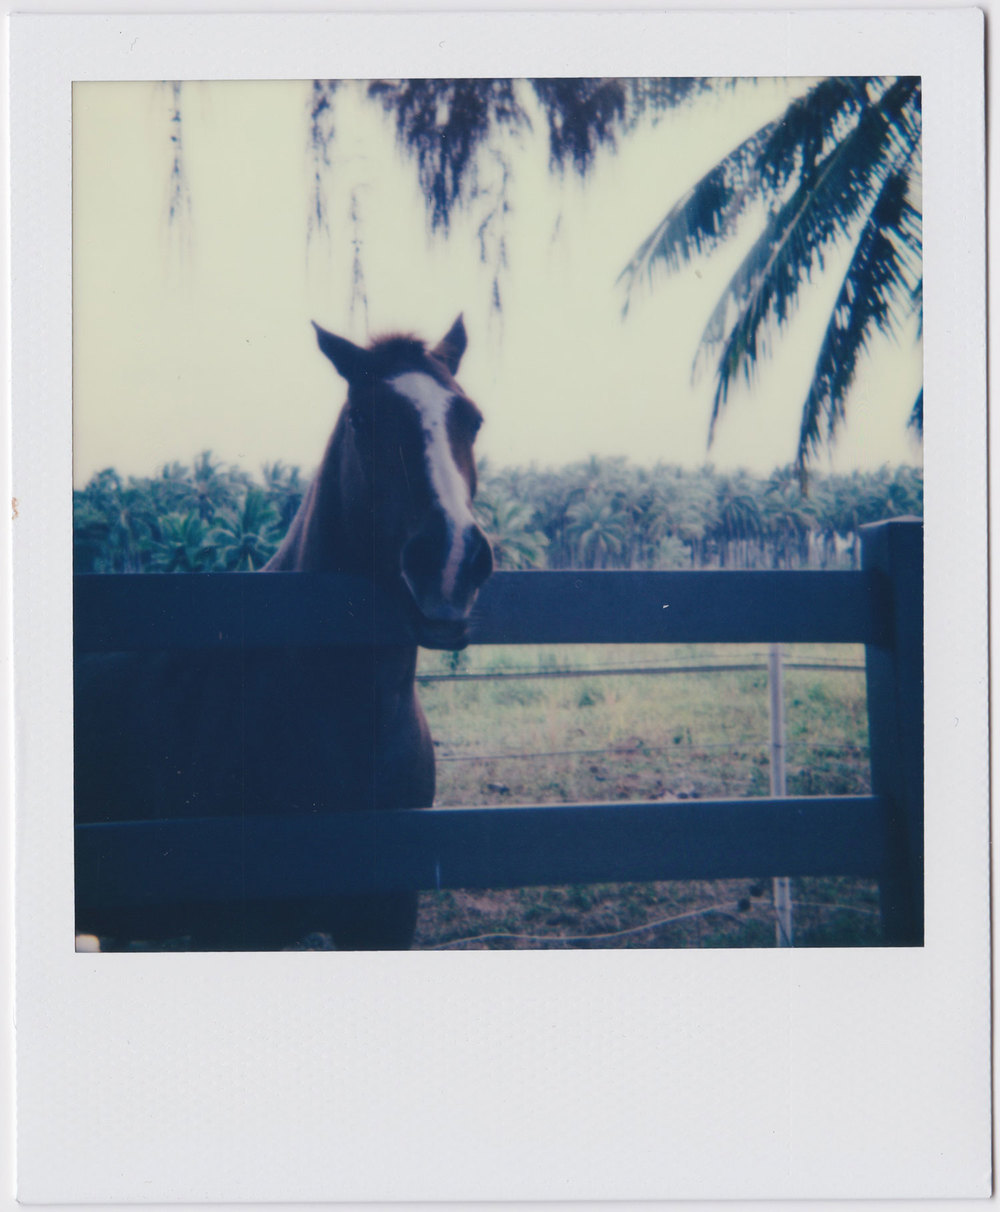 whoiscx_christina_choi_photography_polaroid_film_hawaii_horse_9.jpg